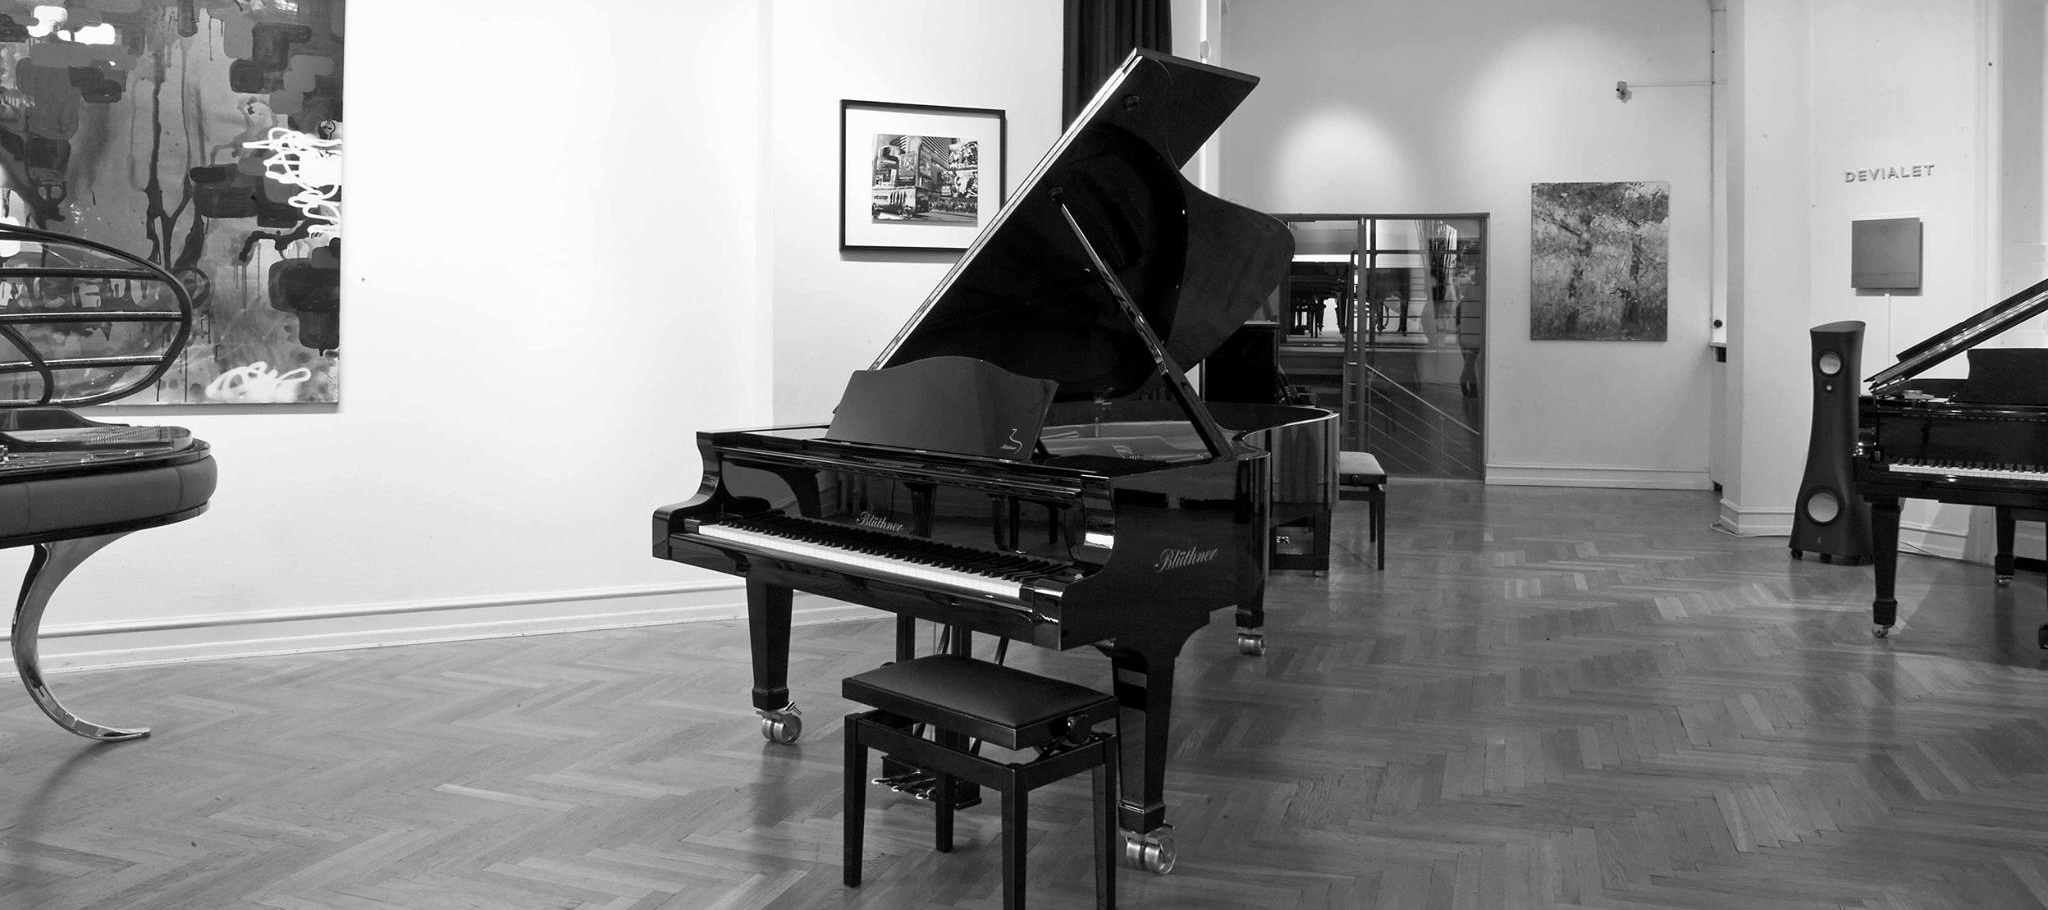 Showroom Bredgade bw - wide